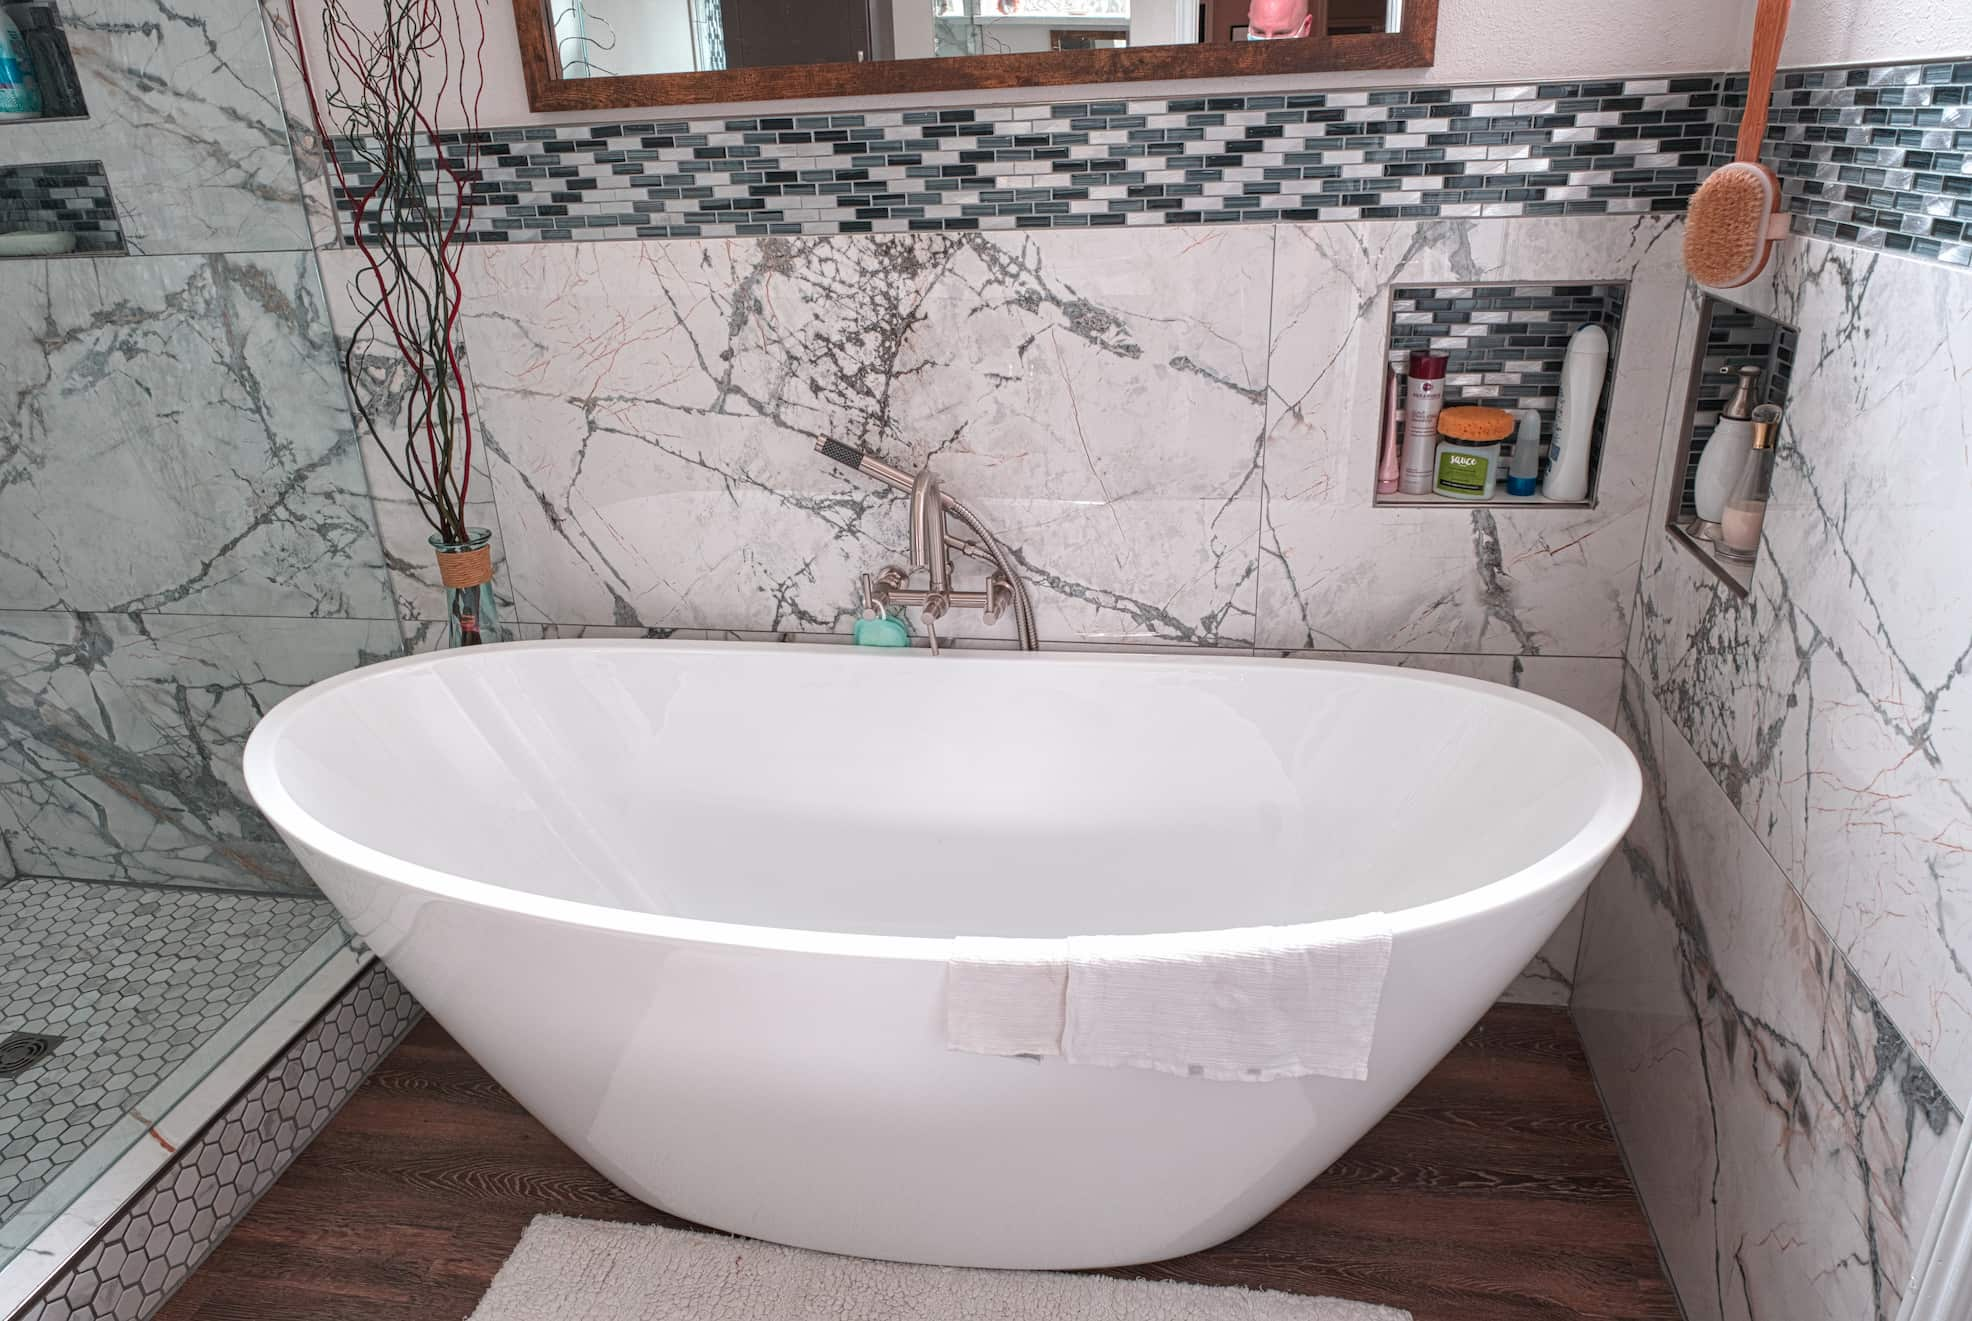 Freestanding Tub Remodel With Wall Mounted Tub Filler